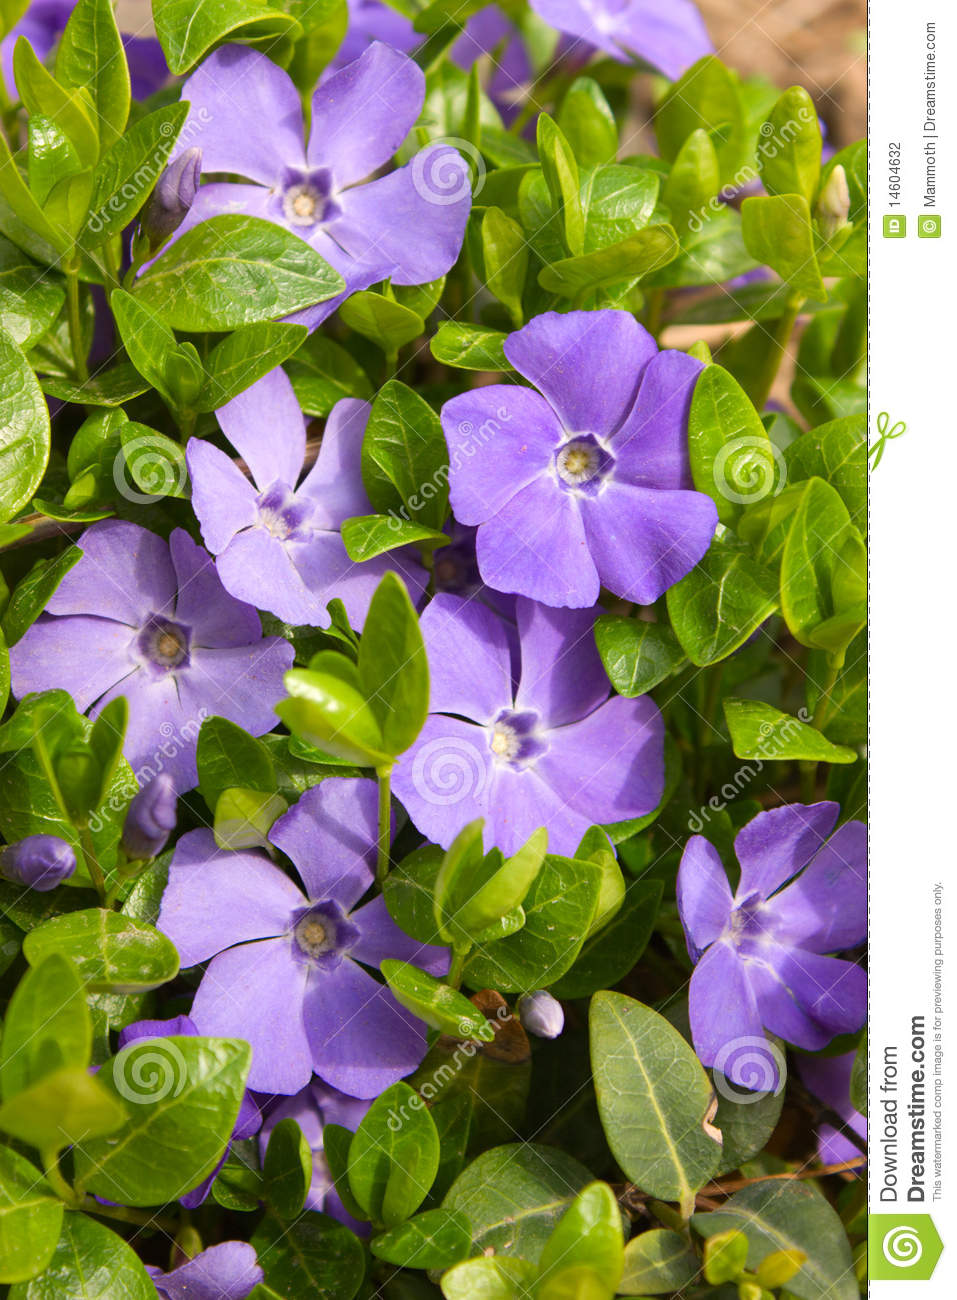 Violet Flowers With Green Leaves (Vinca Major) Stock Photography.